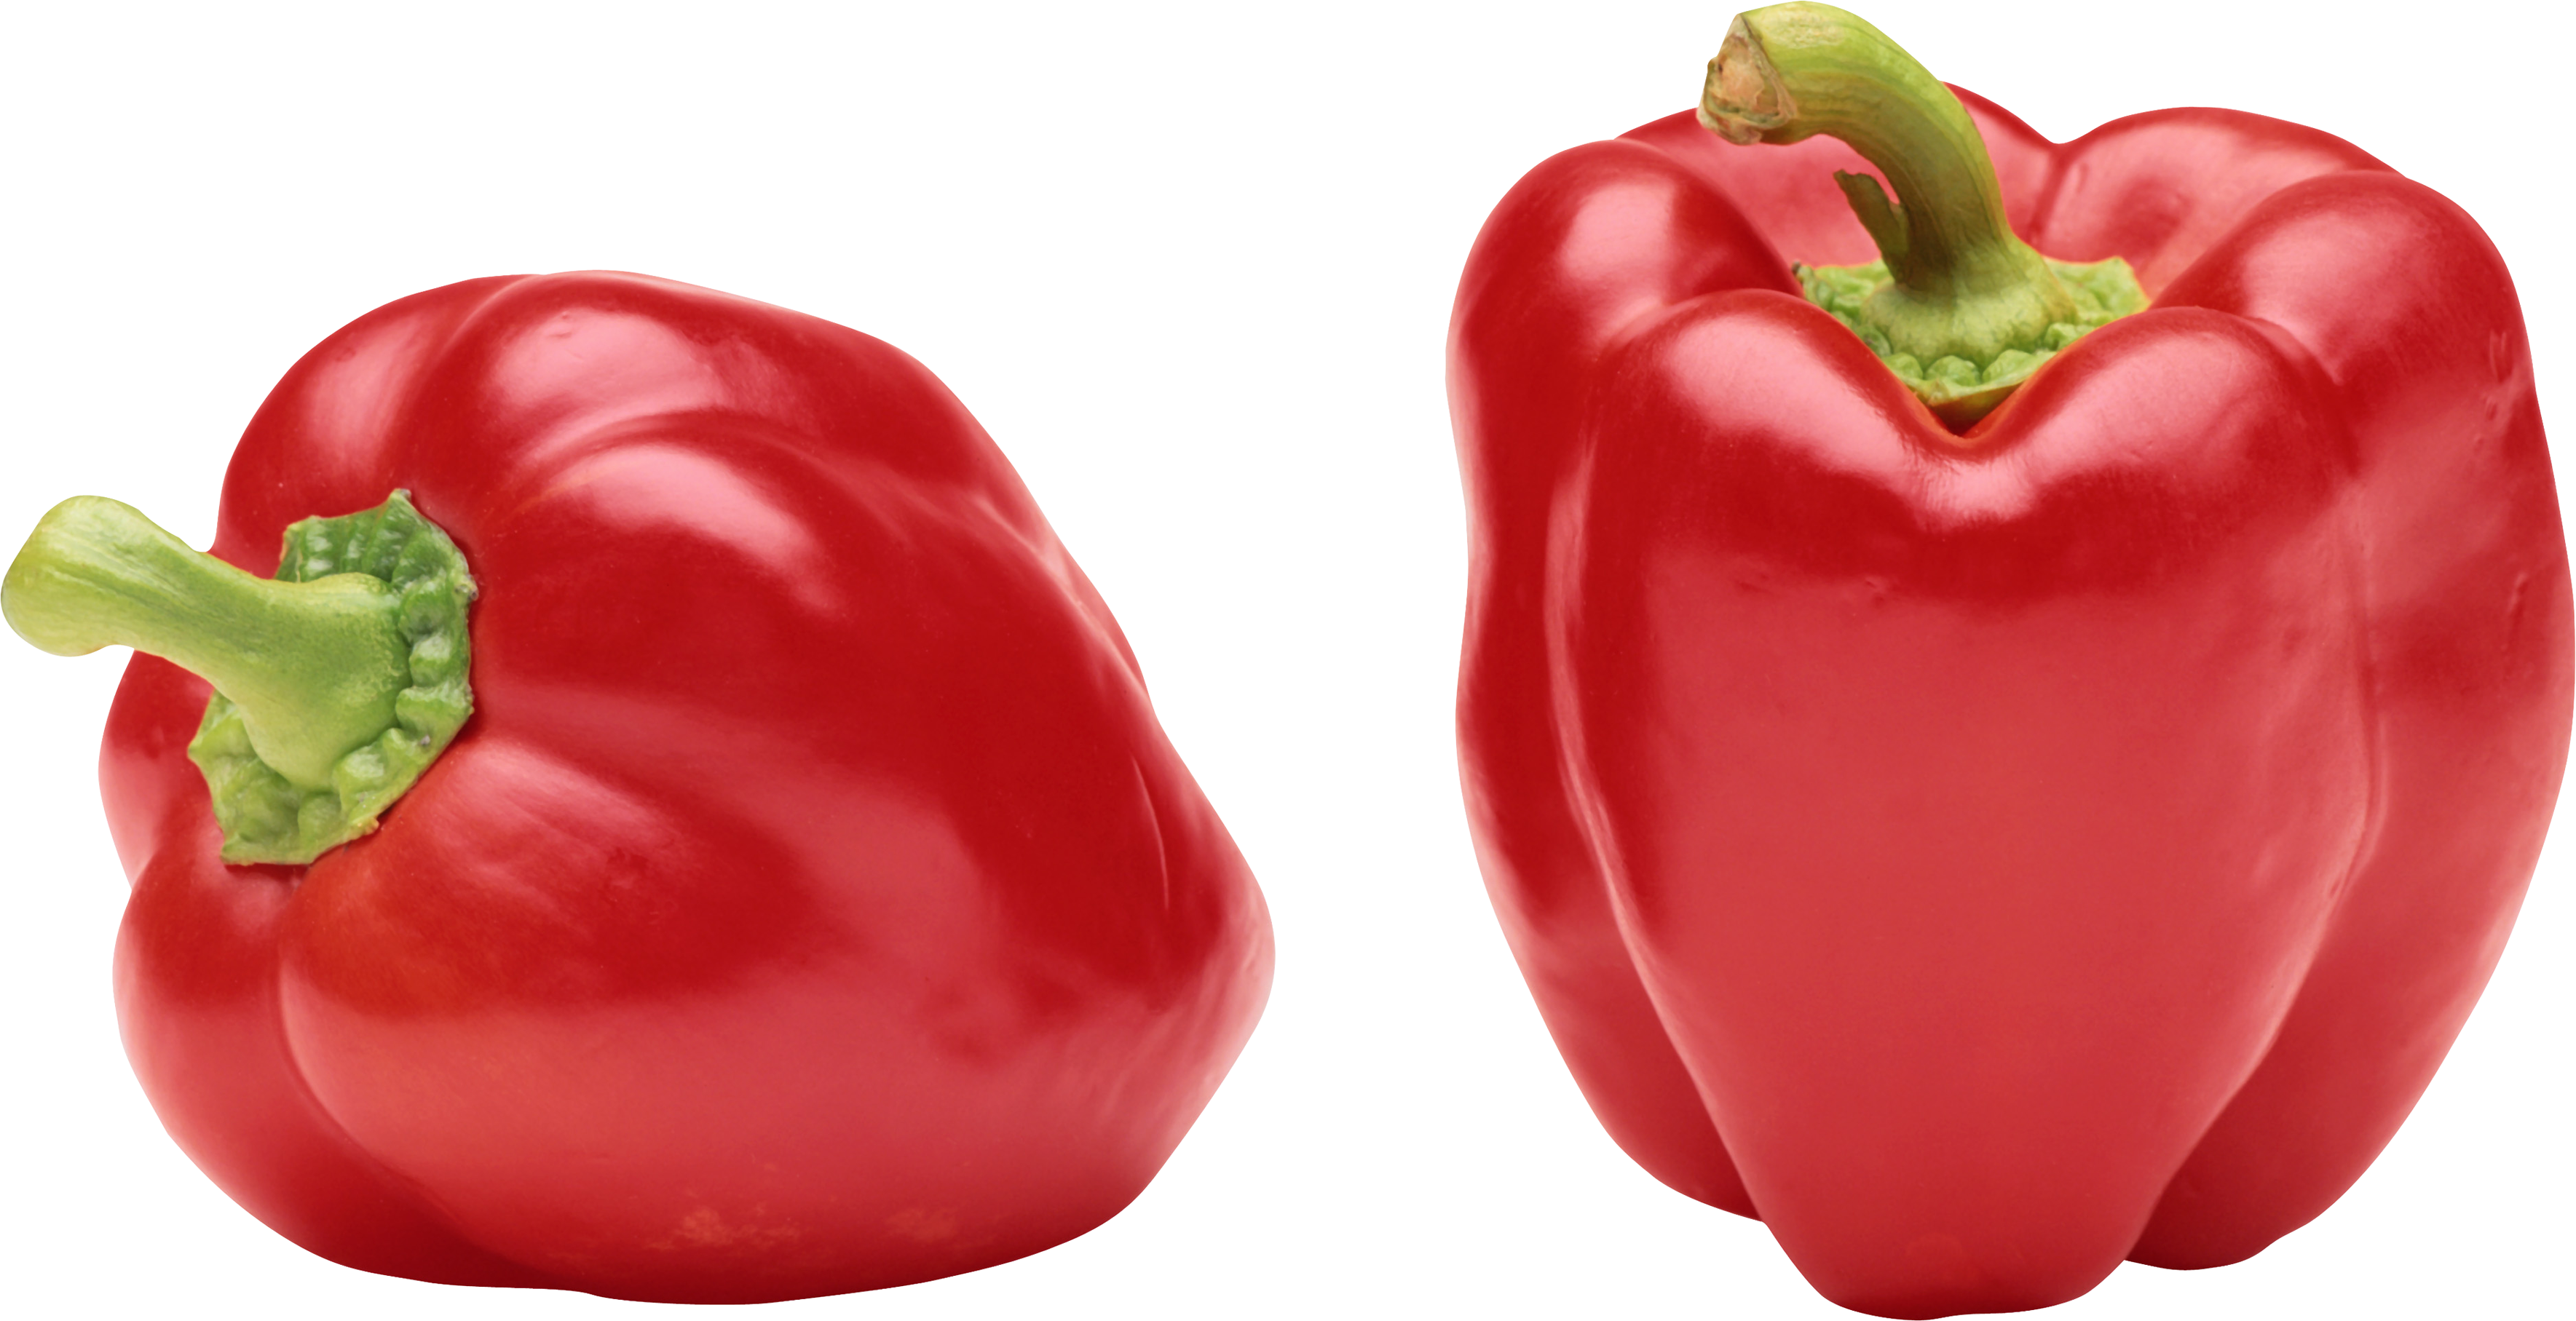 Peppers clipart sweet pepper. Red bell nine isolated